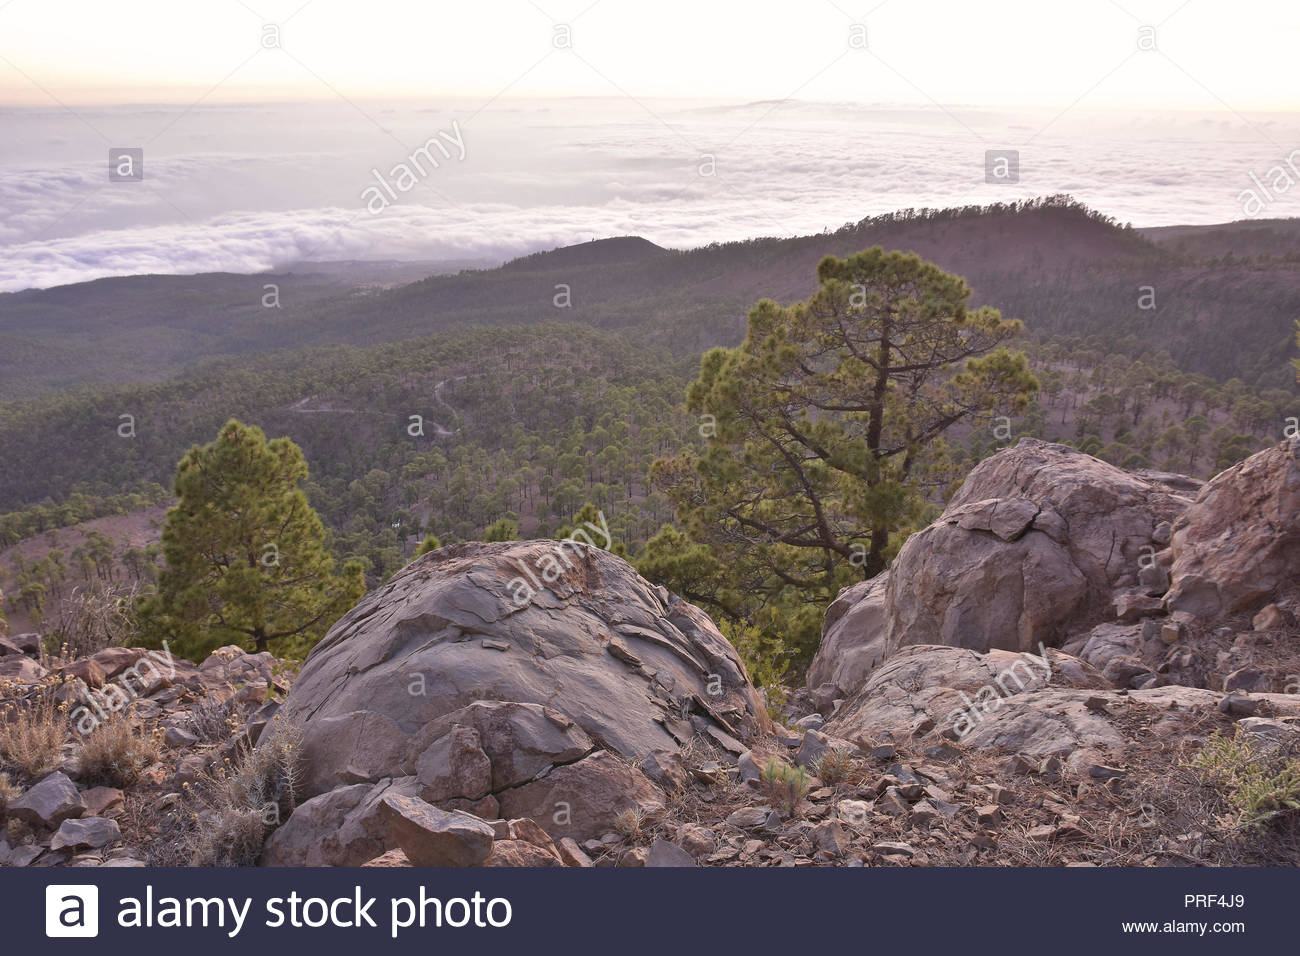 Volcanic rocks and pine trees (Pinus canariensis) of Corona Forestal Natural Park Tenerife Canary Islands Spain. High elevation view at dusk. - Stock Image